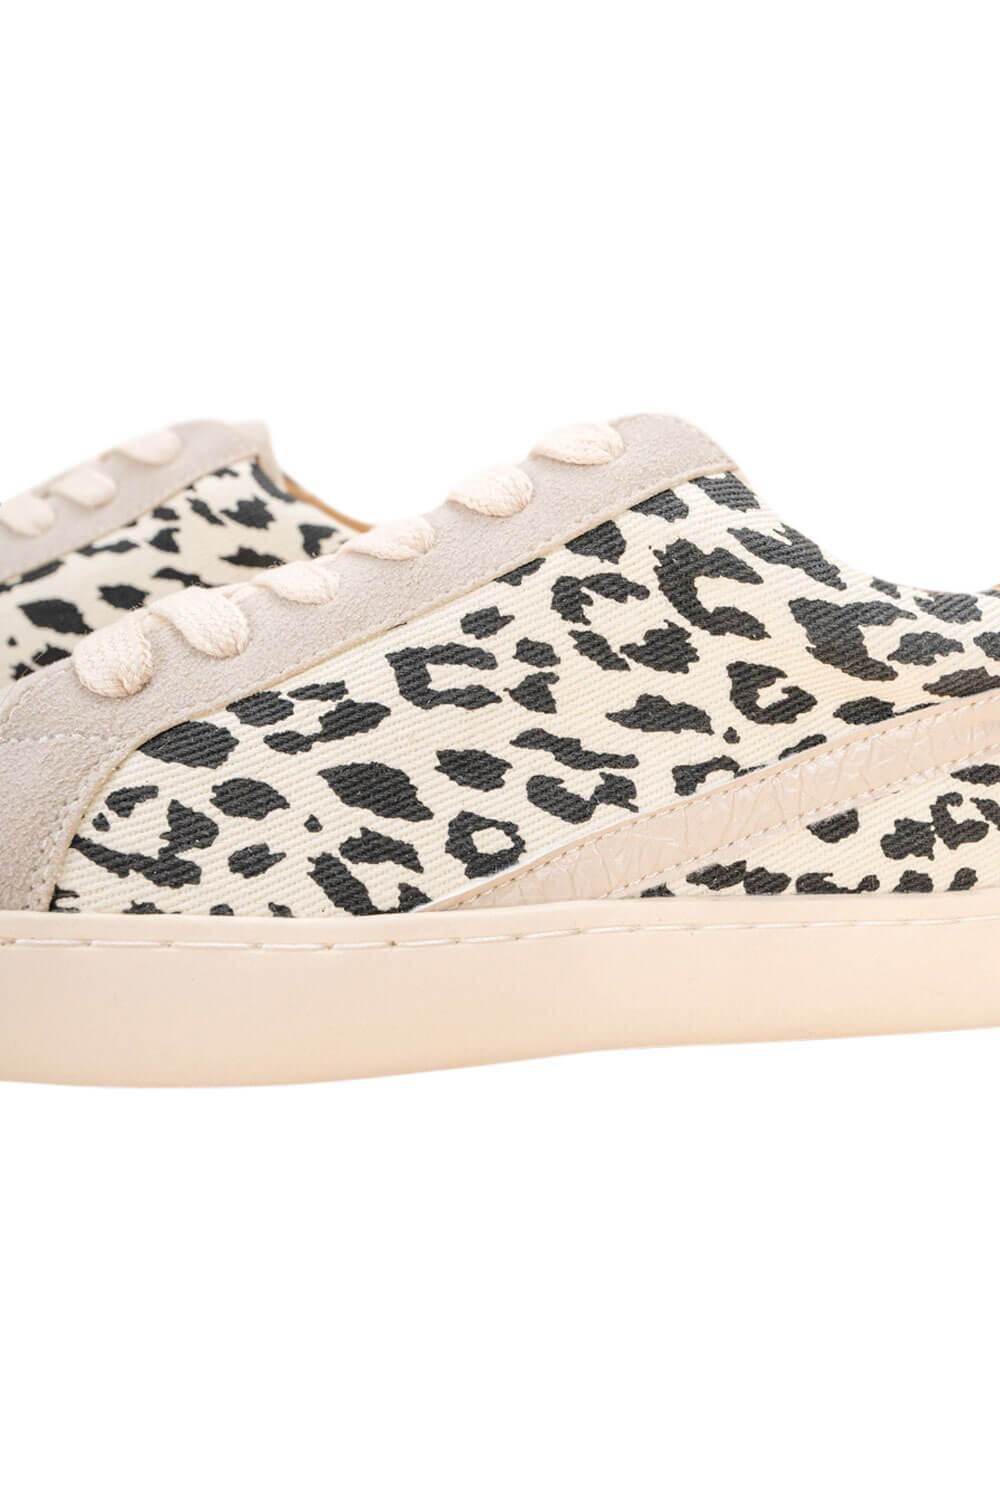 Jordan Leopard Low Top Sneaker beige side detail MILK MONEY